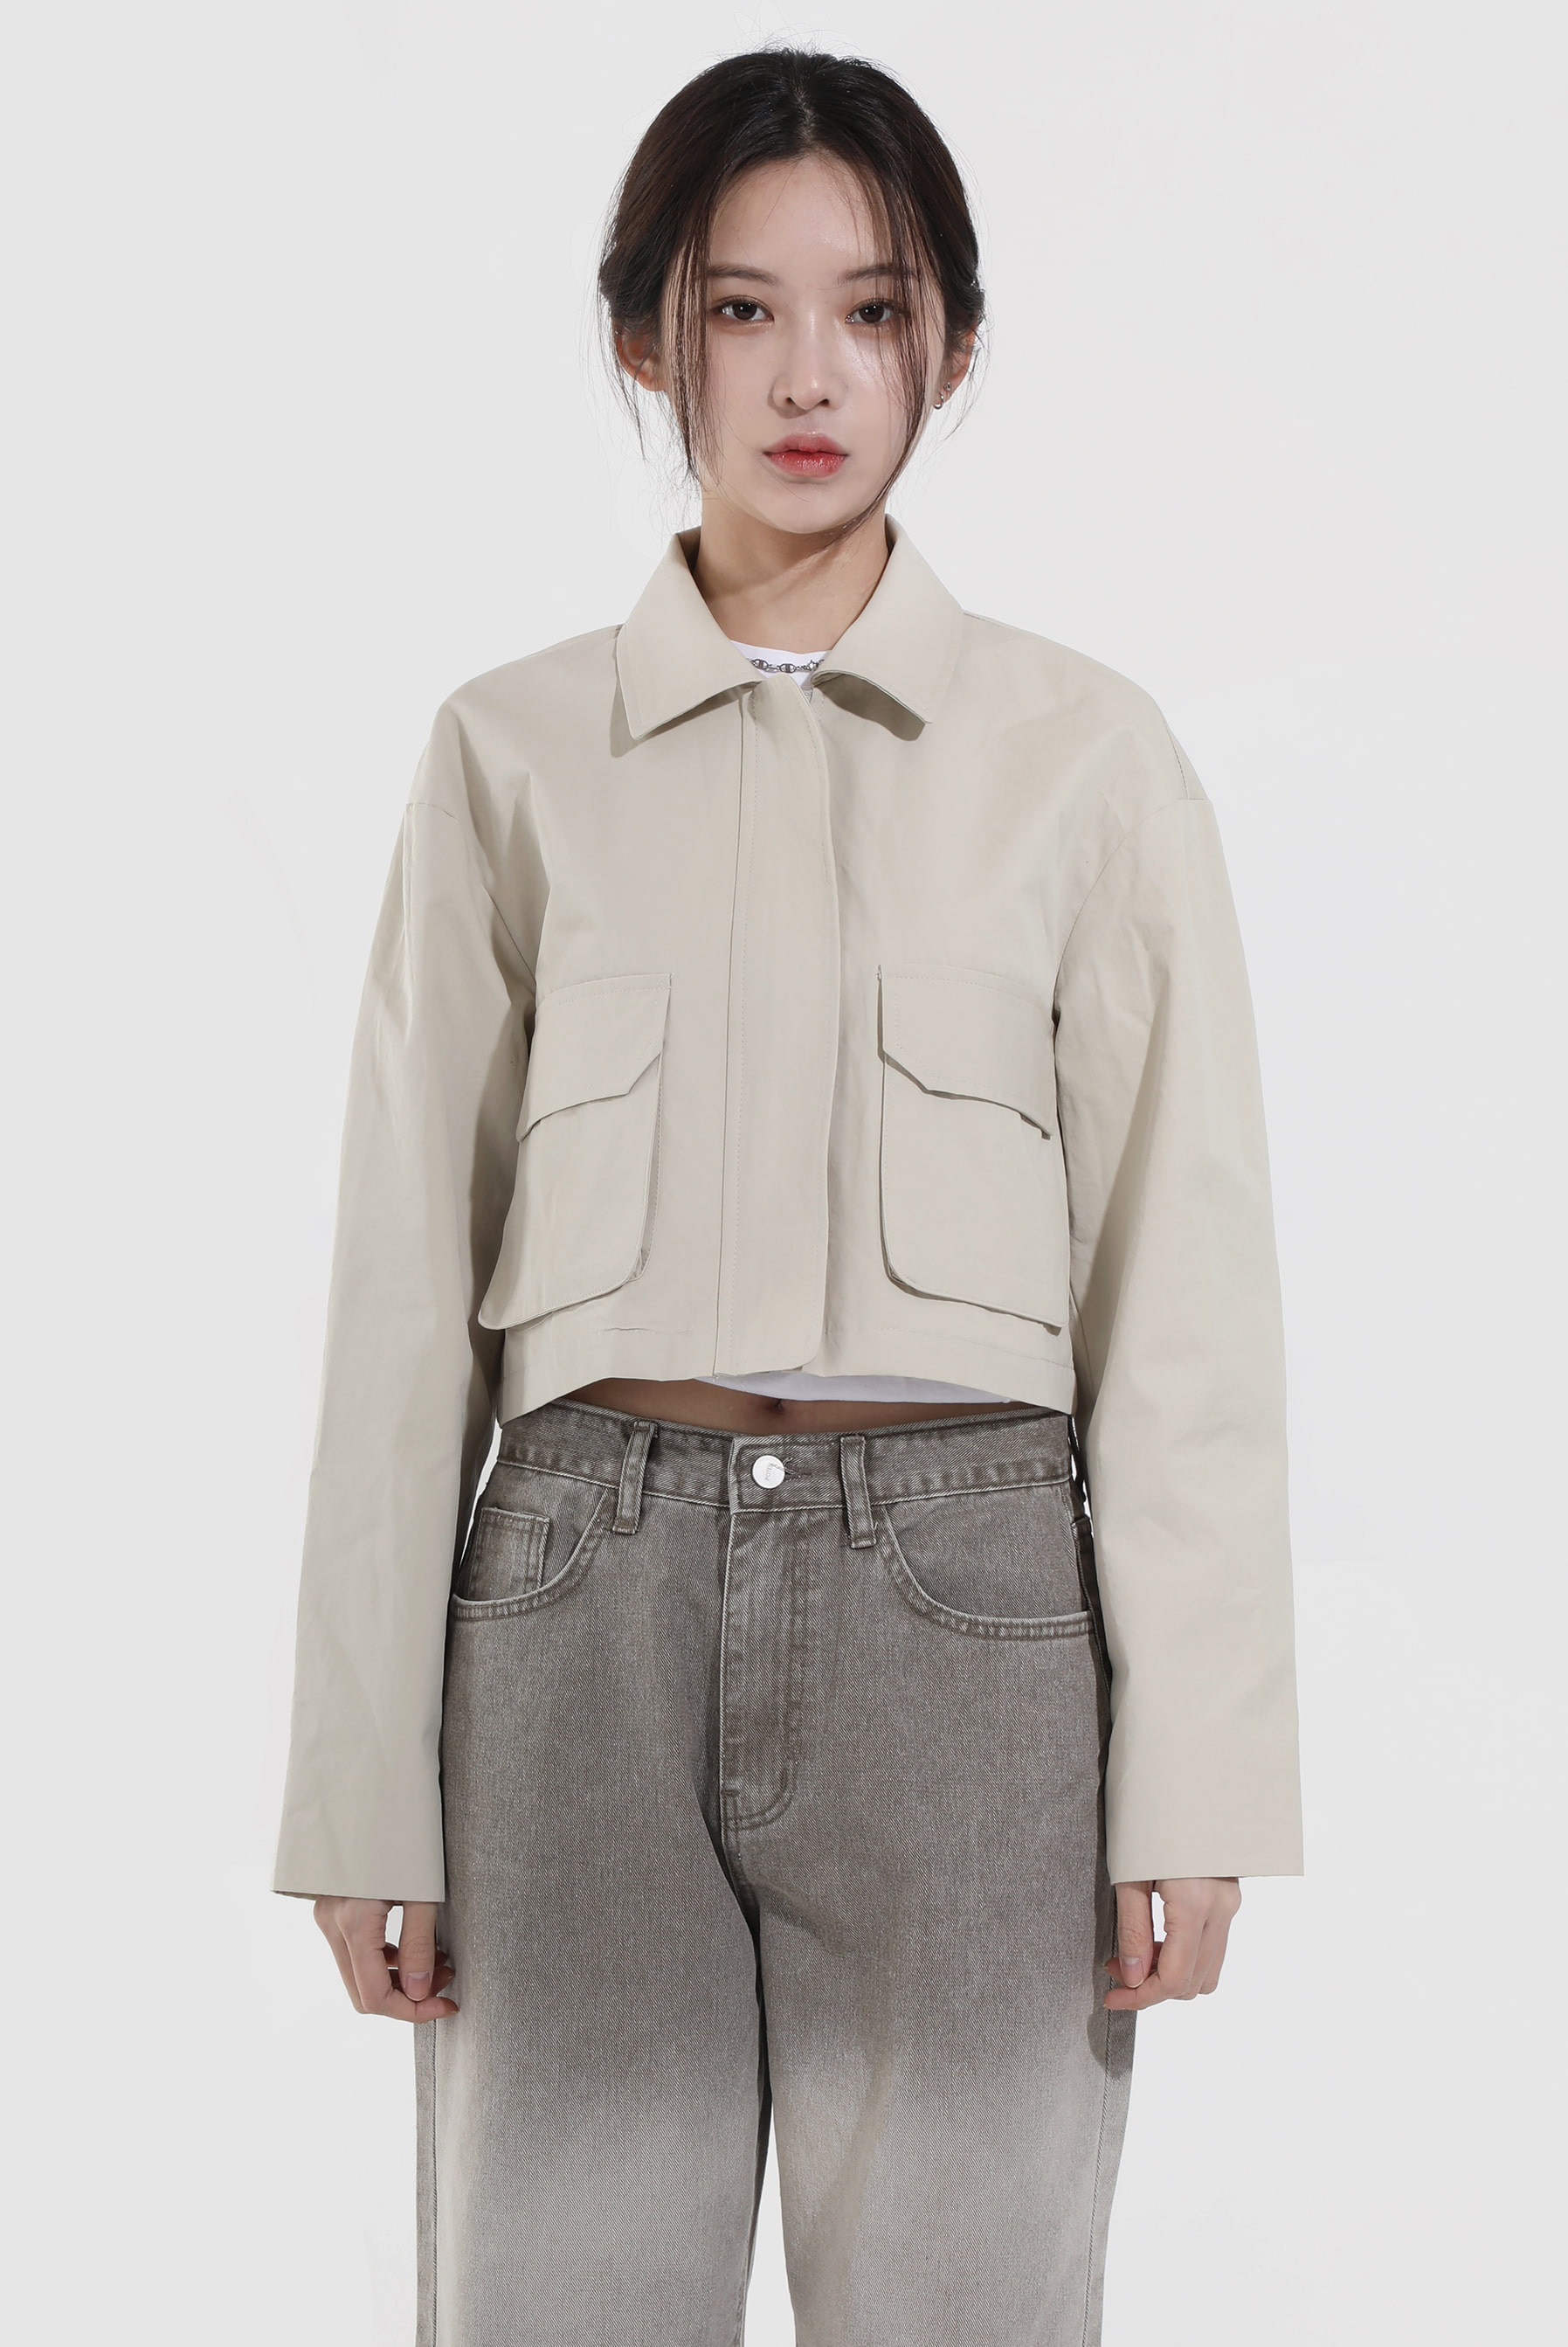 Crop_Hardtack Jacket